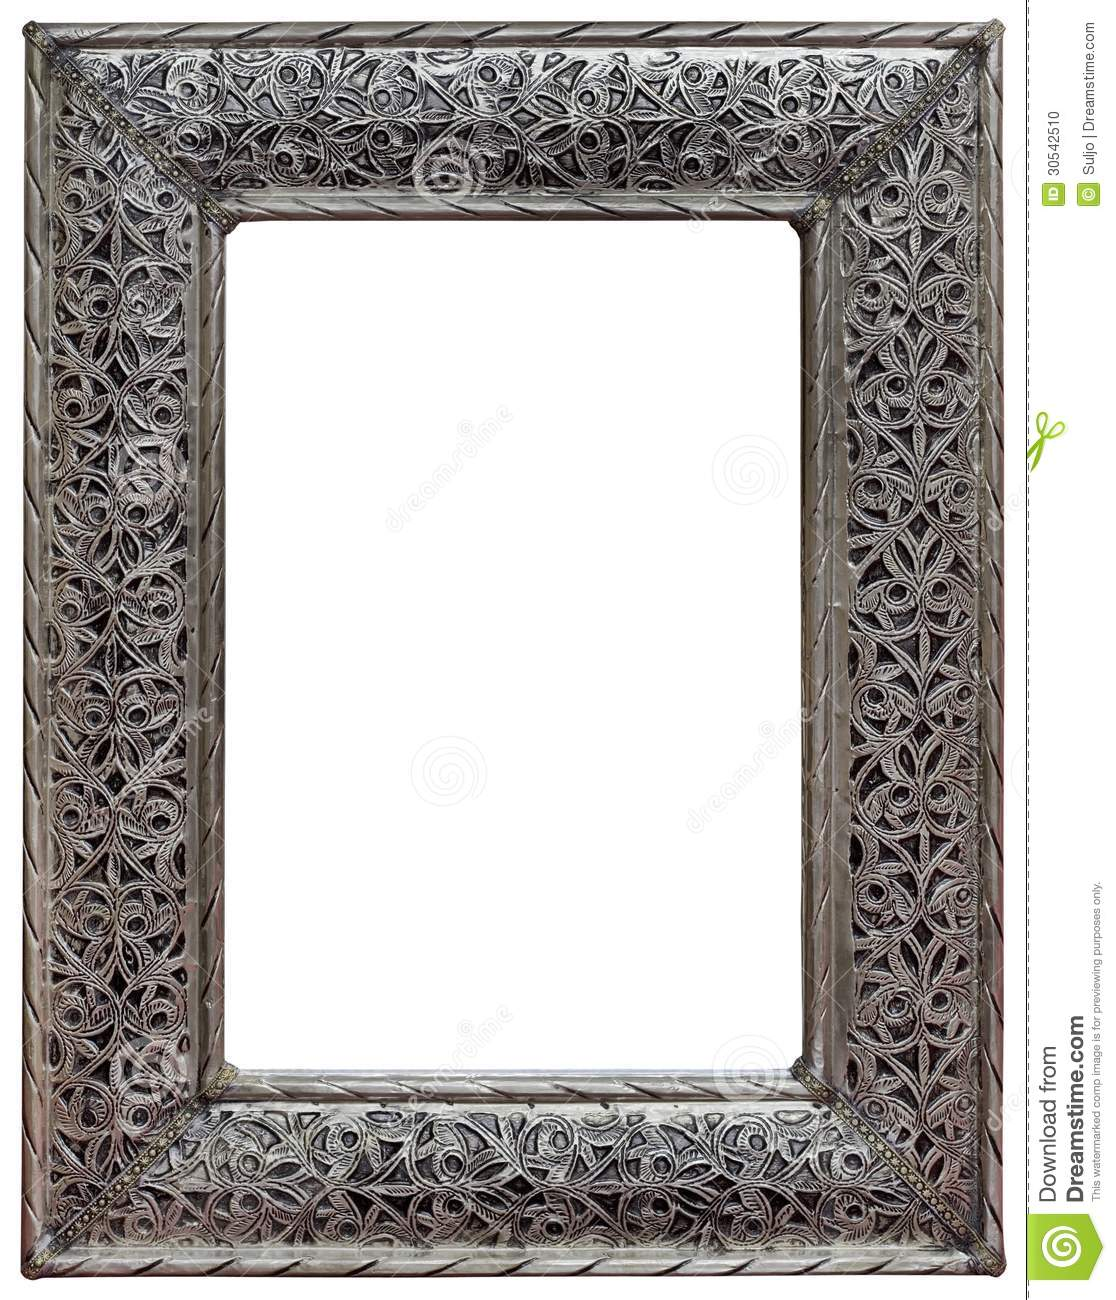 Spiegel Fotolijst Pewter Mirror Frame Cutout Stock Photo Image 30542510